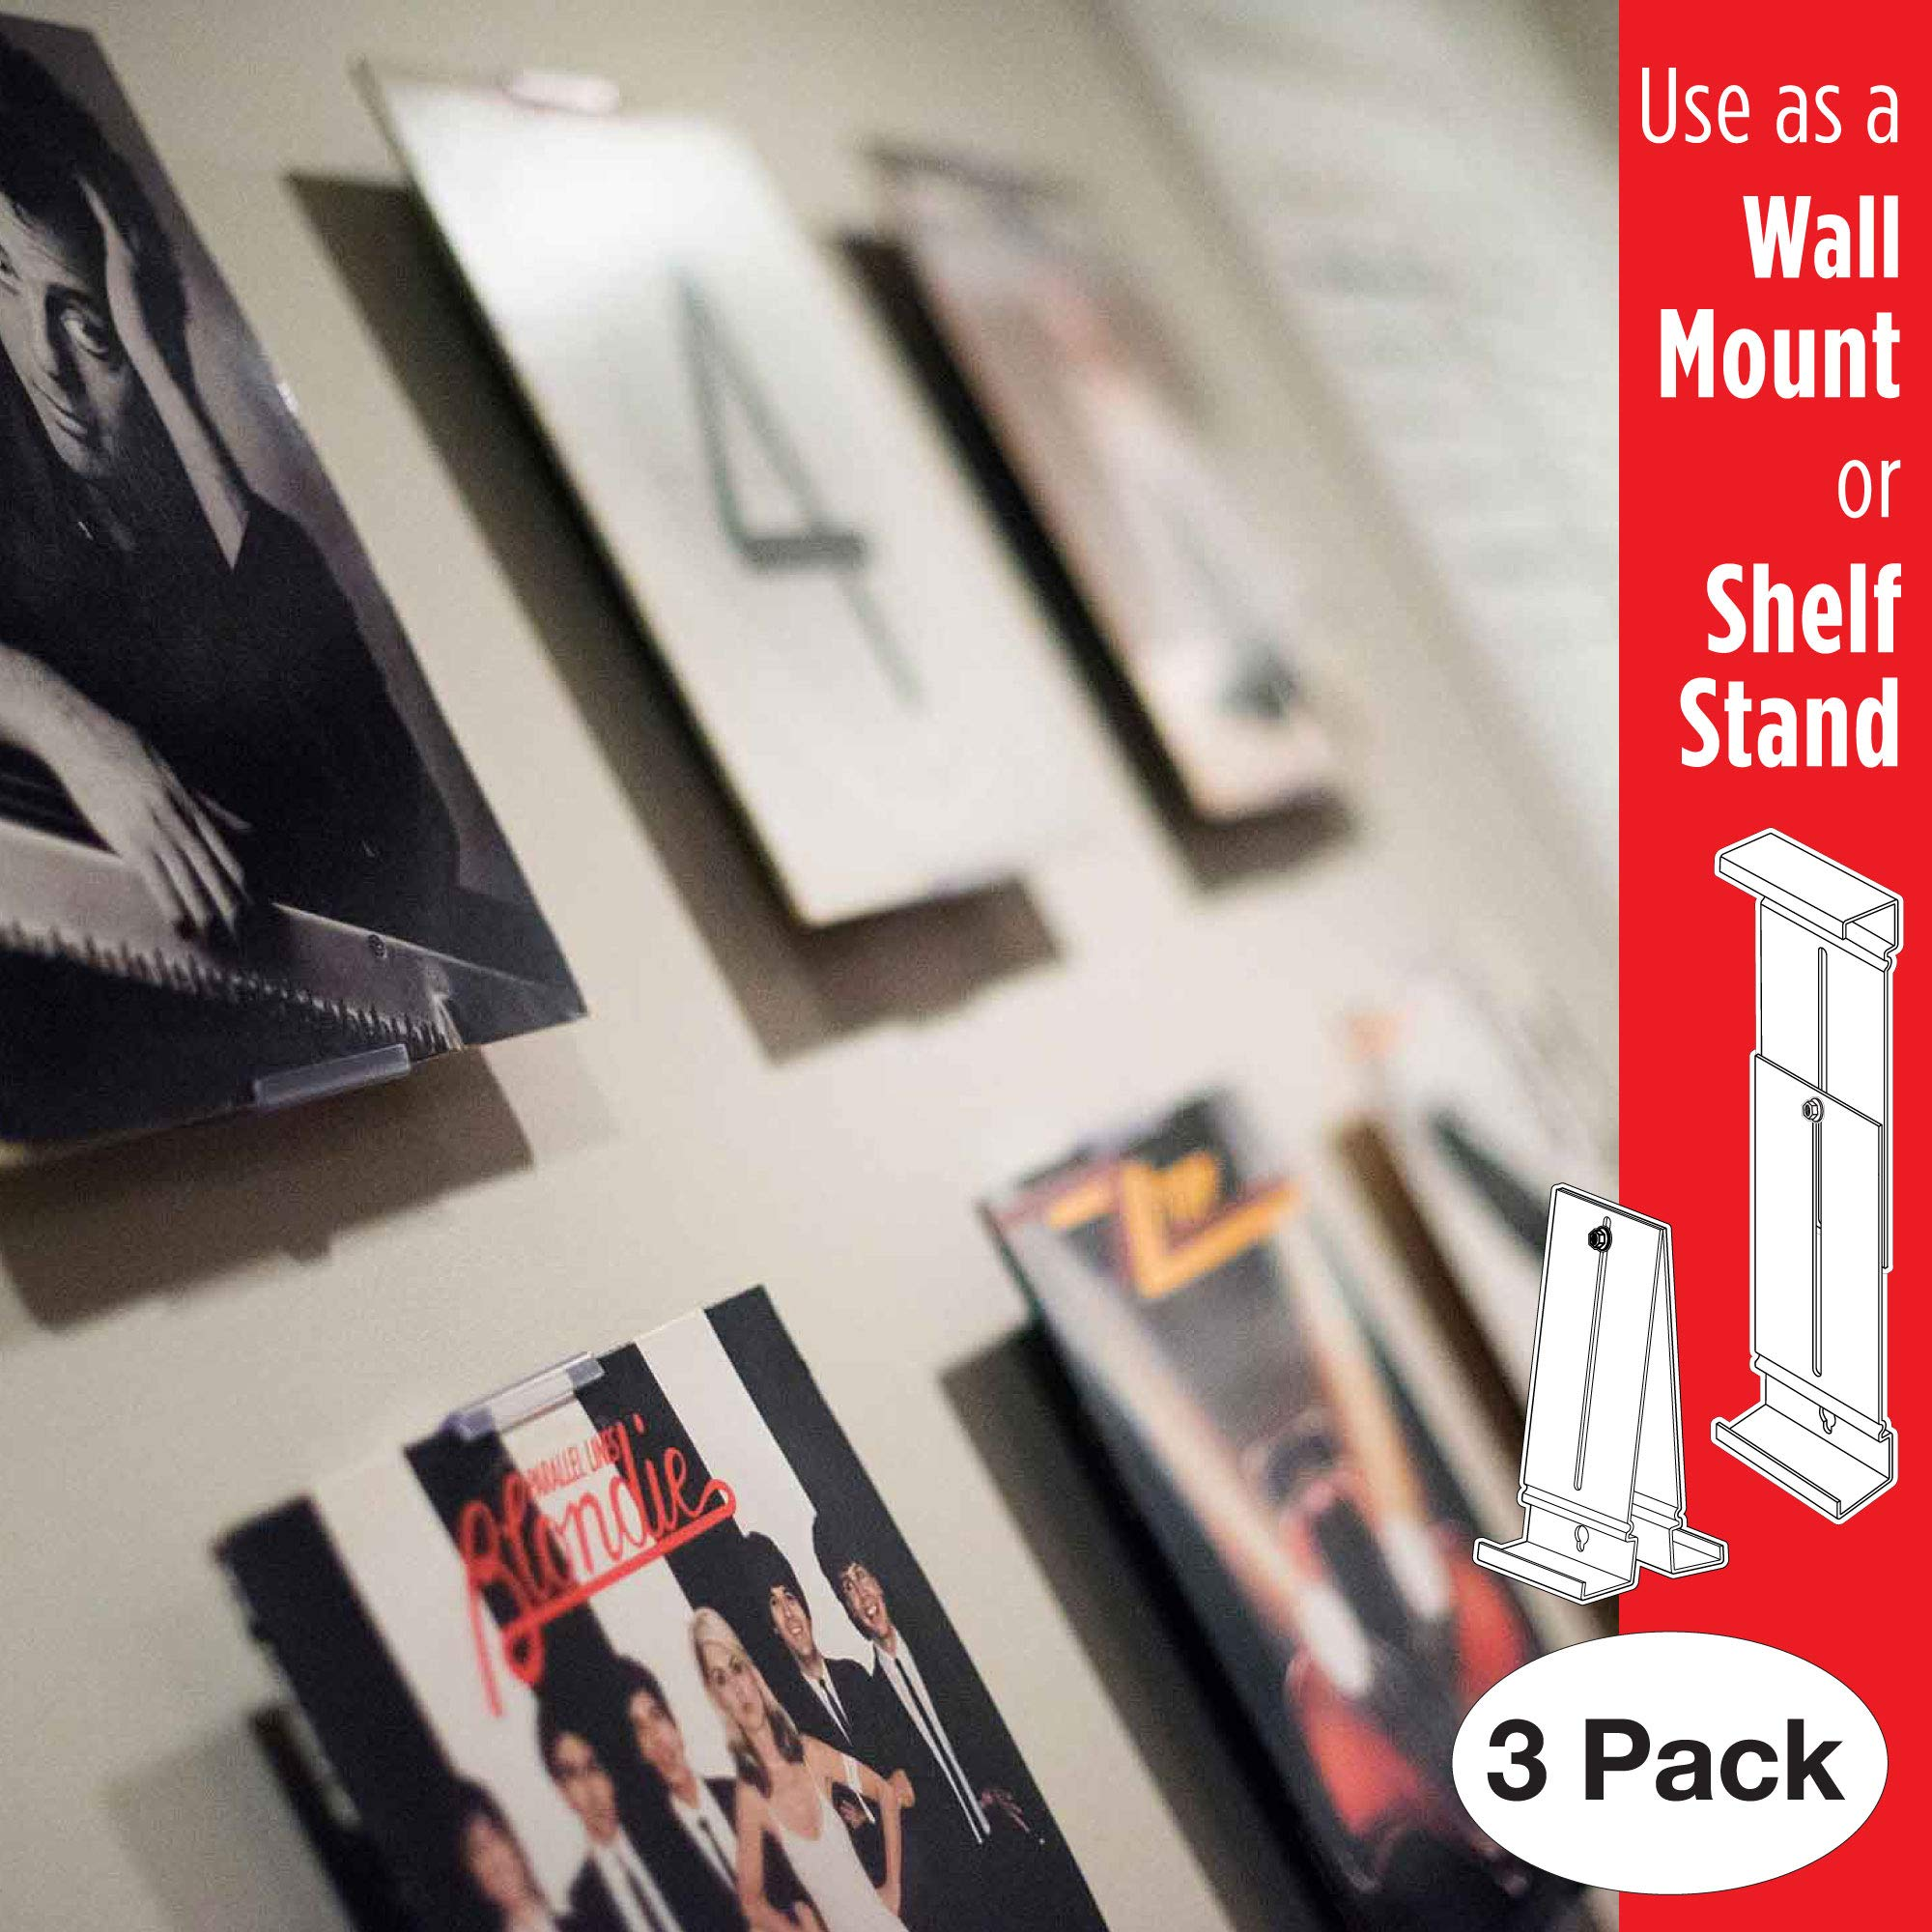 Album Mount Vinyl Record Frame, Wall Mount and Shelf Stand, Invisible and Adjustable, 3 Pack